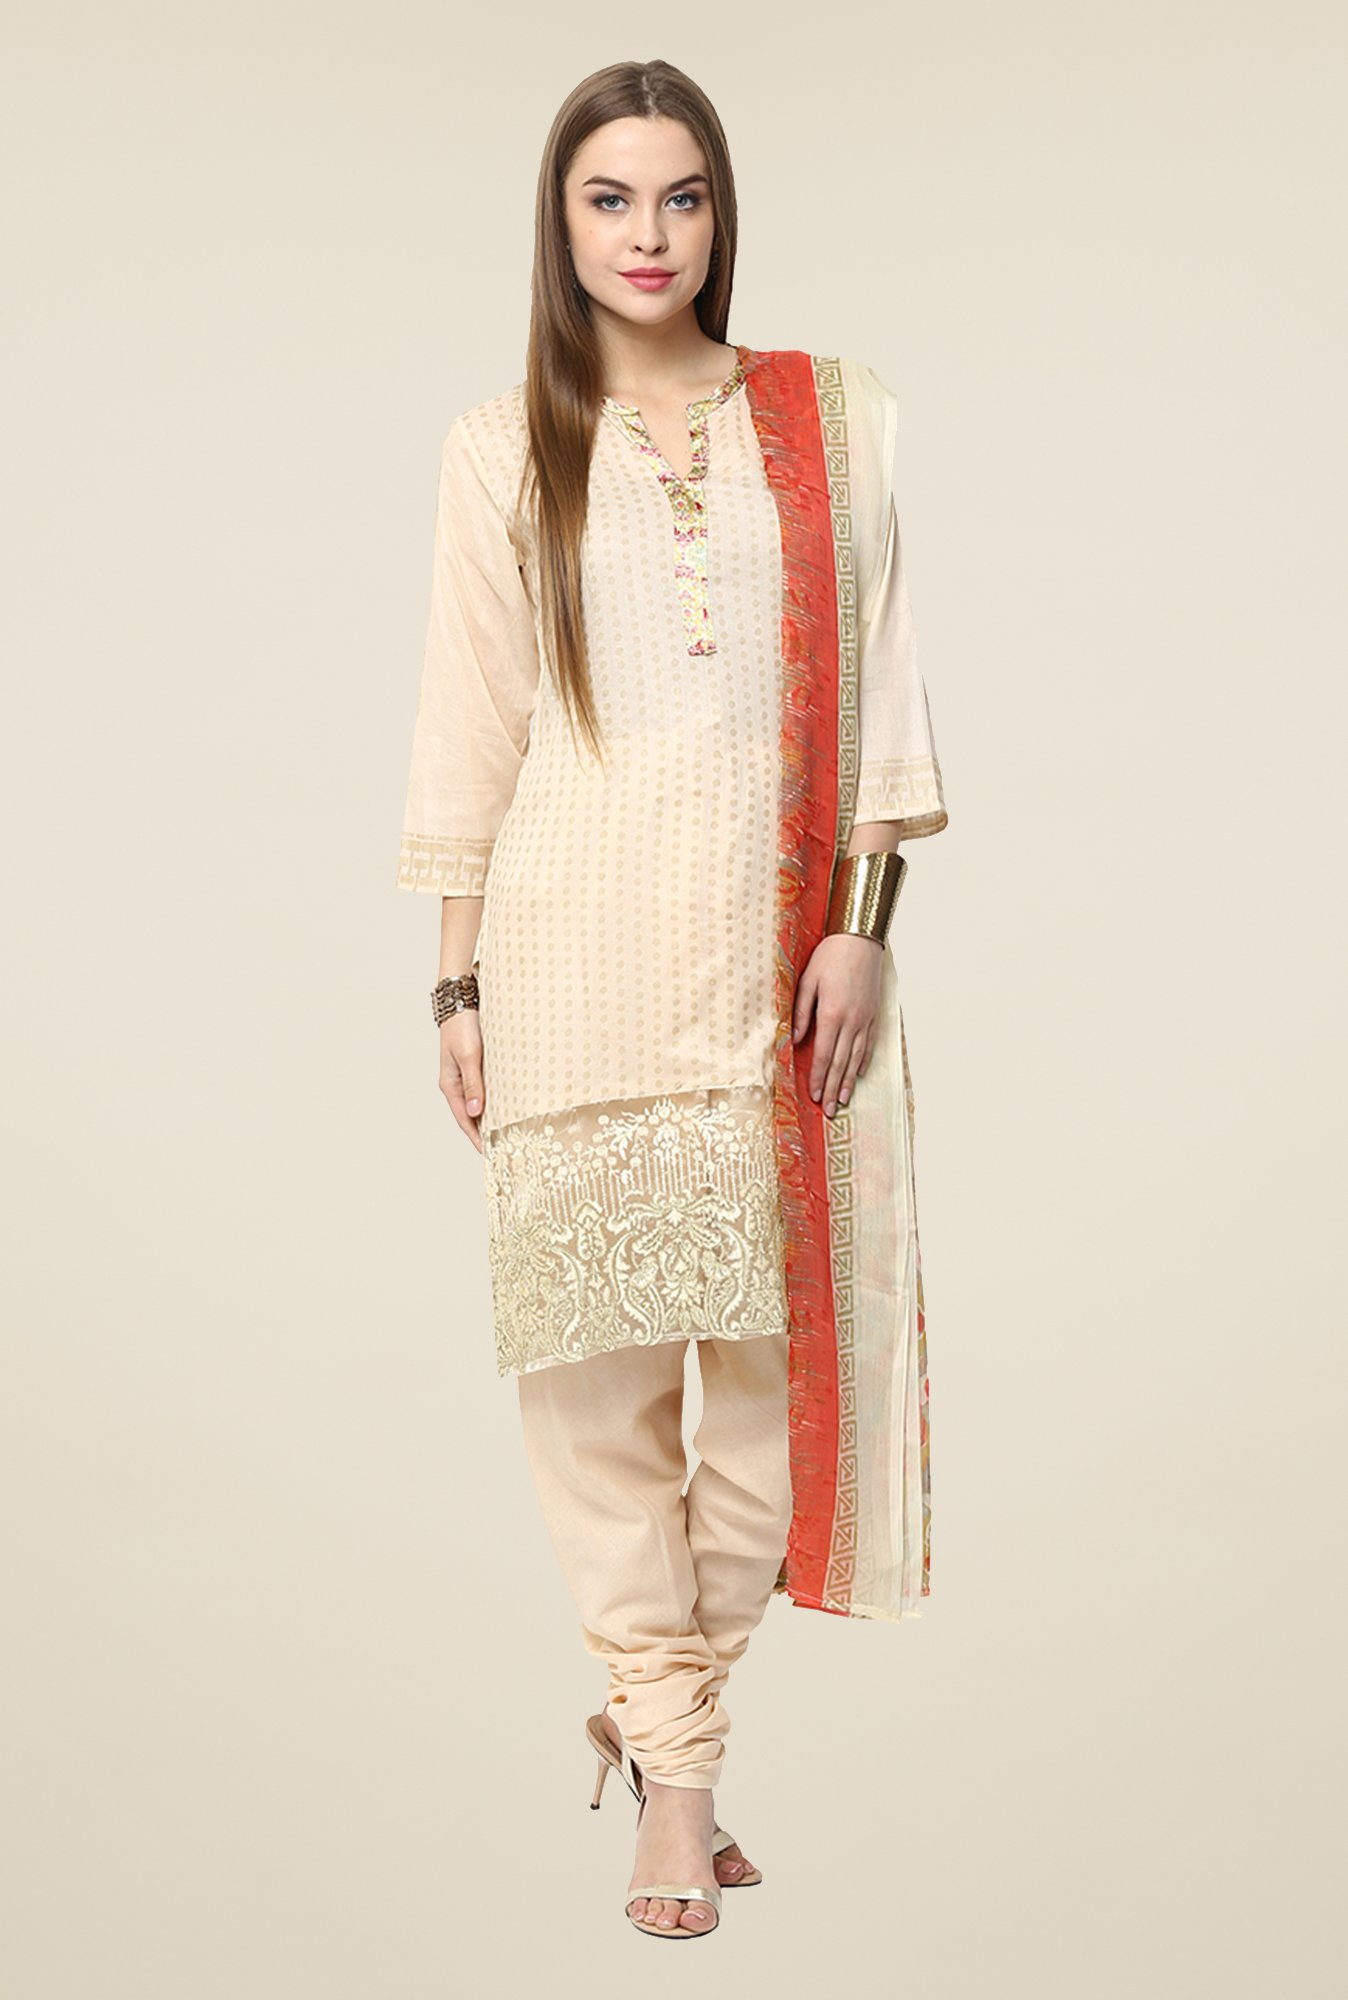 Yepme Peach Anaya Semi Stitched Pakistani Suit Set